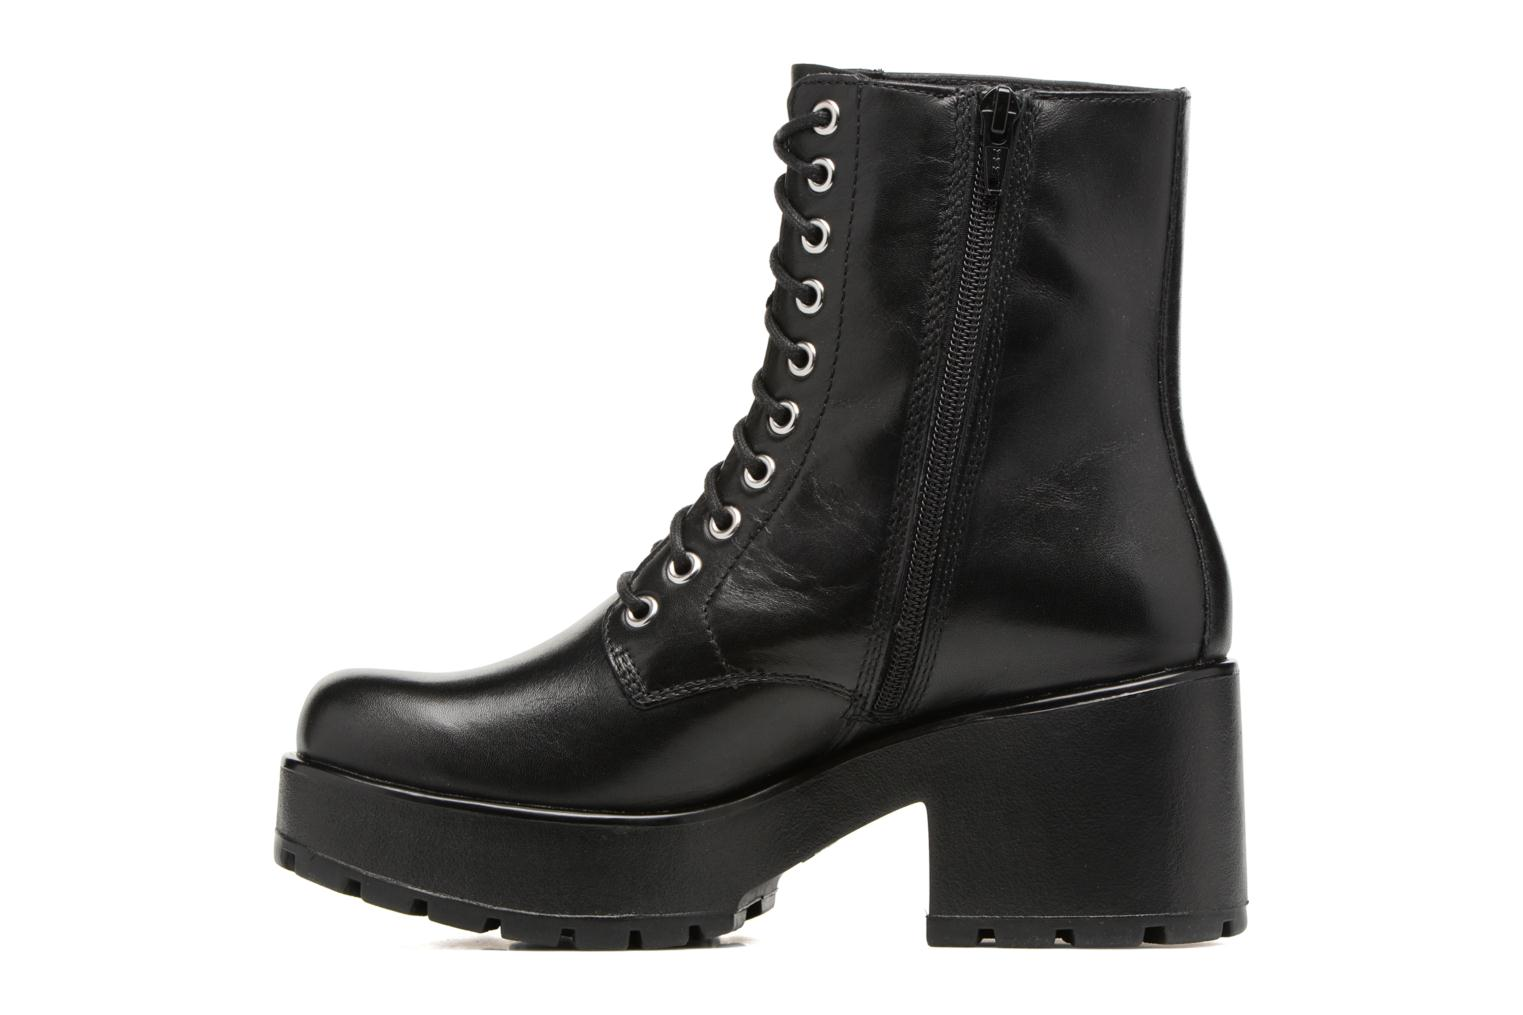 Bottines et boots Vagabond Dioon 4447-001 Noir vue face